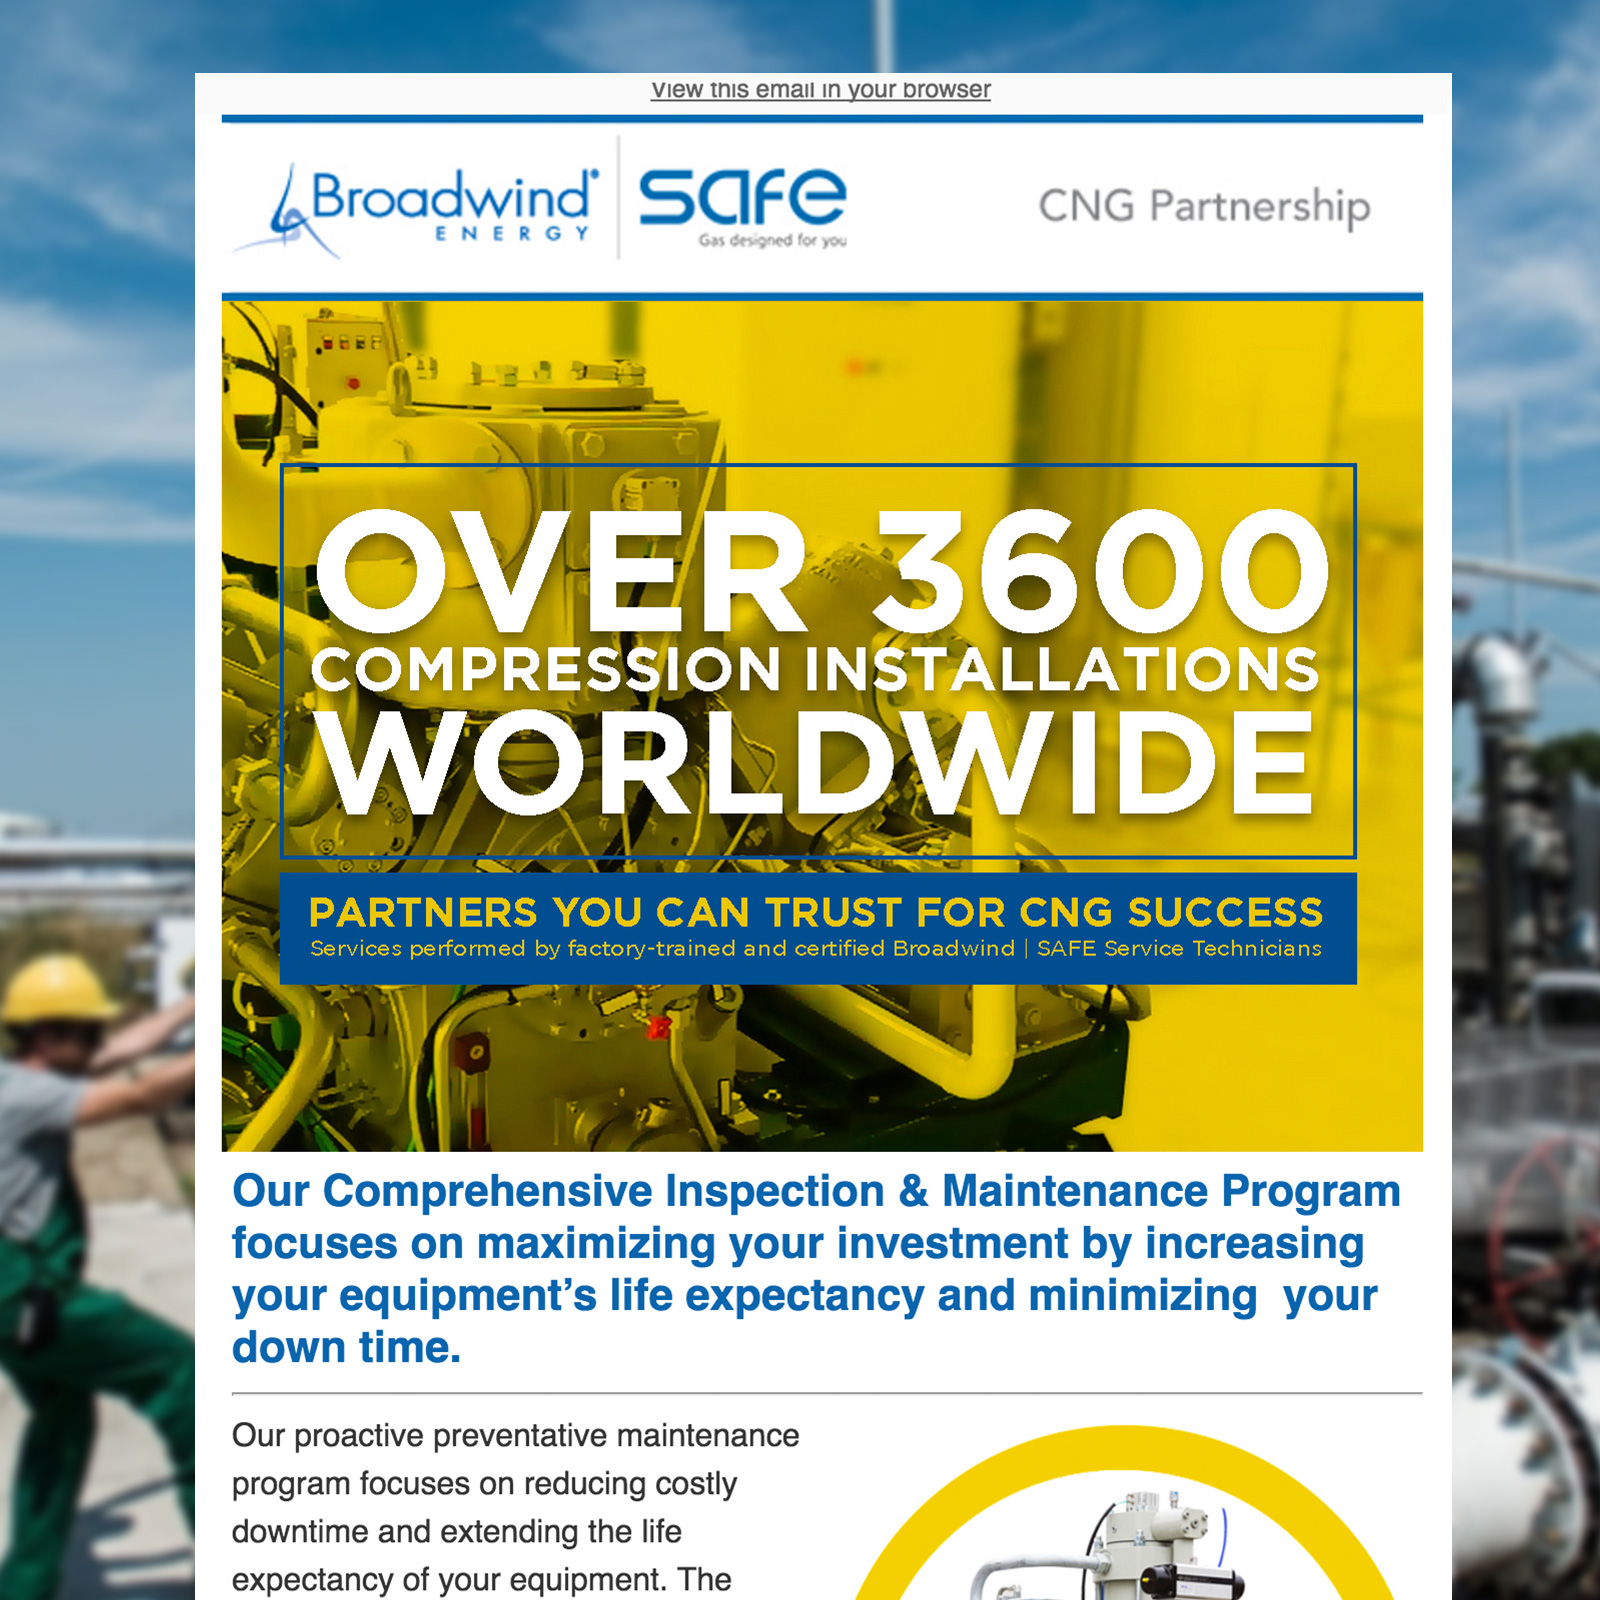 Broadwind Energy Email Campaign